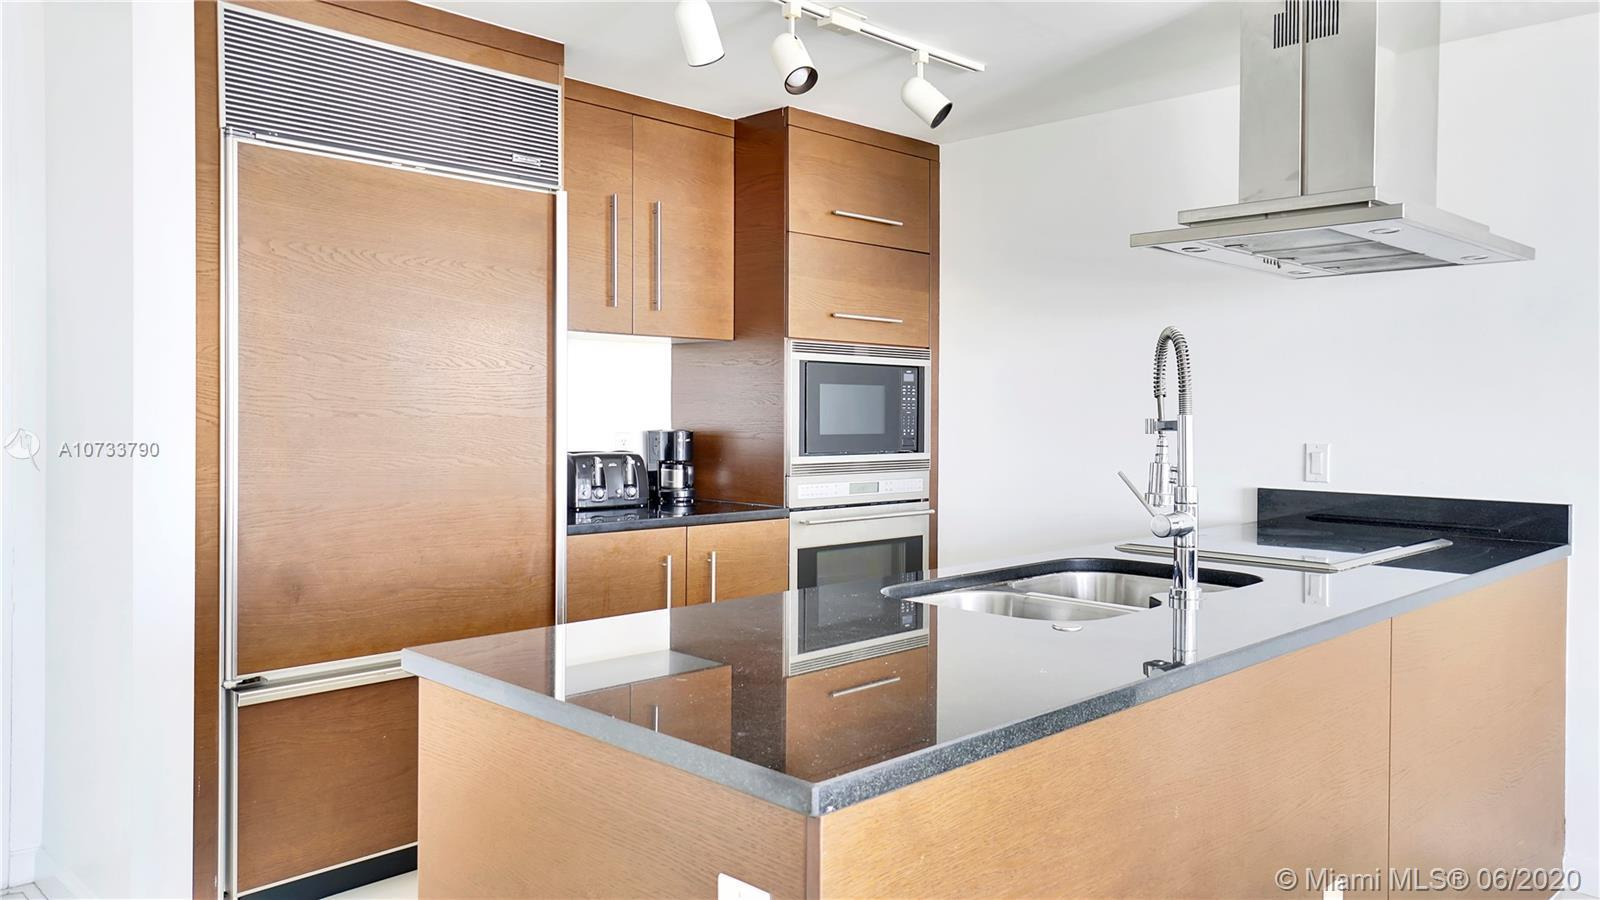 Welcome your new home here at the 4706 unit! Enjoy this bright and stunning 1 bed, 1 bath condo in V